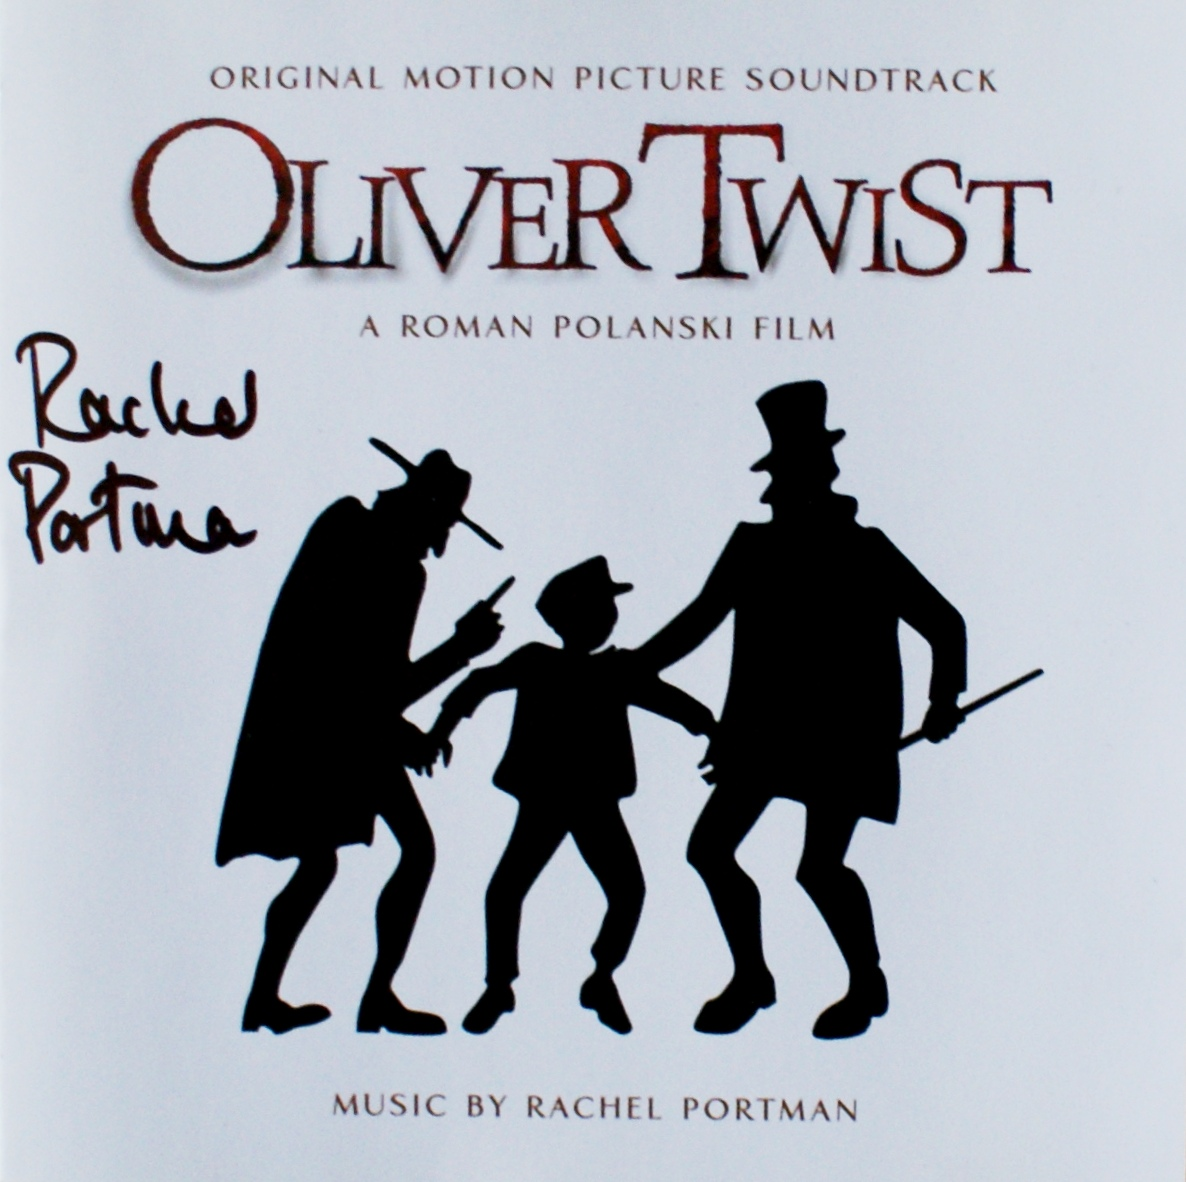 rachel portman the film composer and her music rachel portman oliver twist signed cd